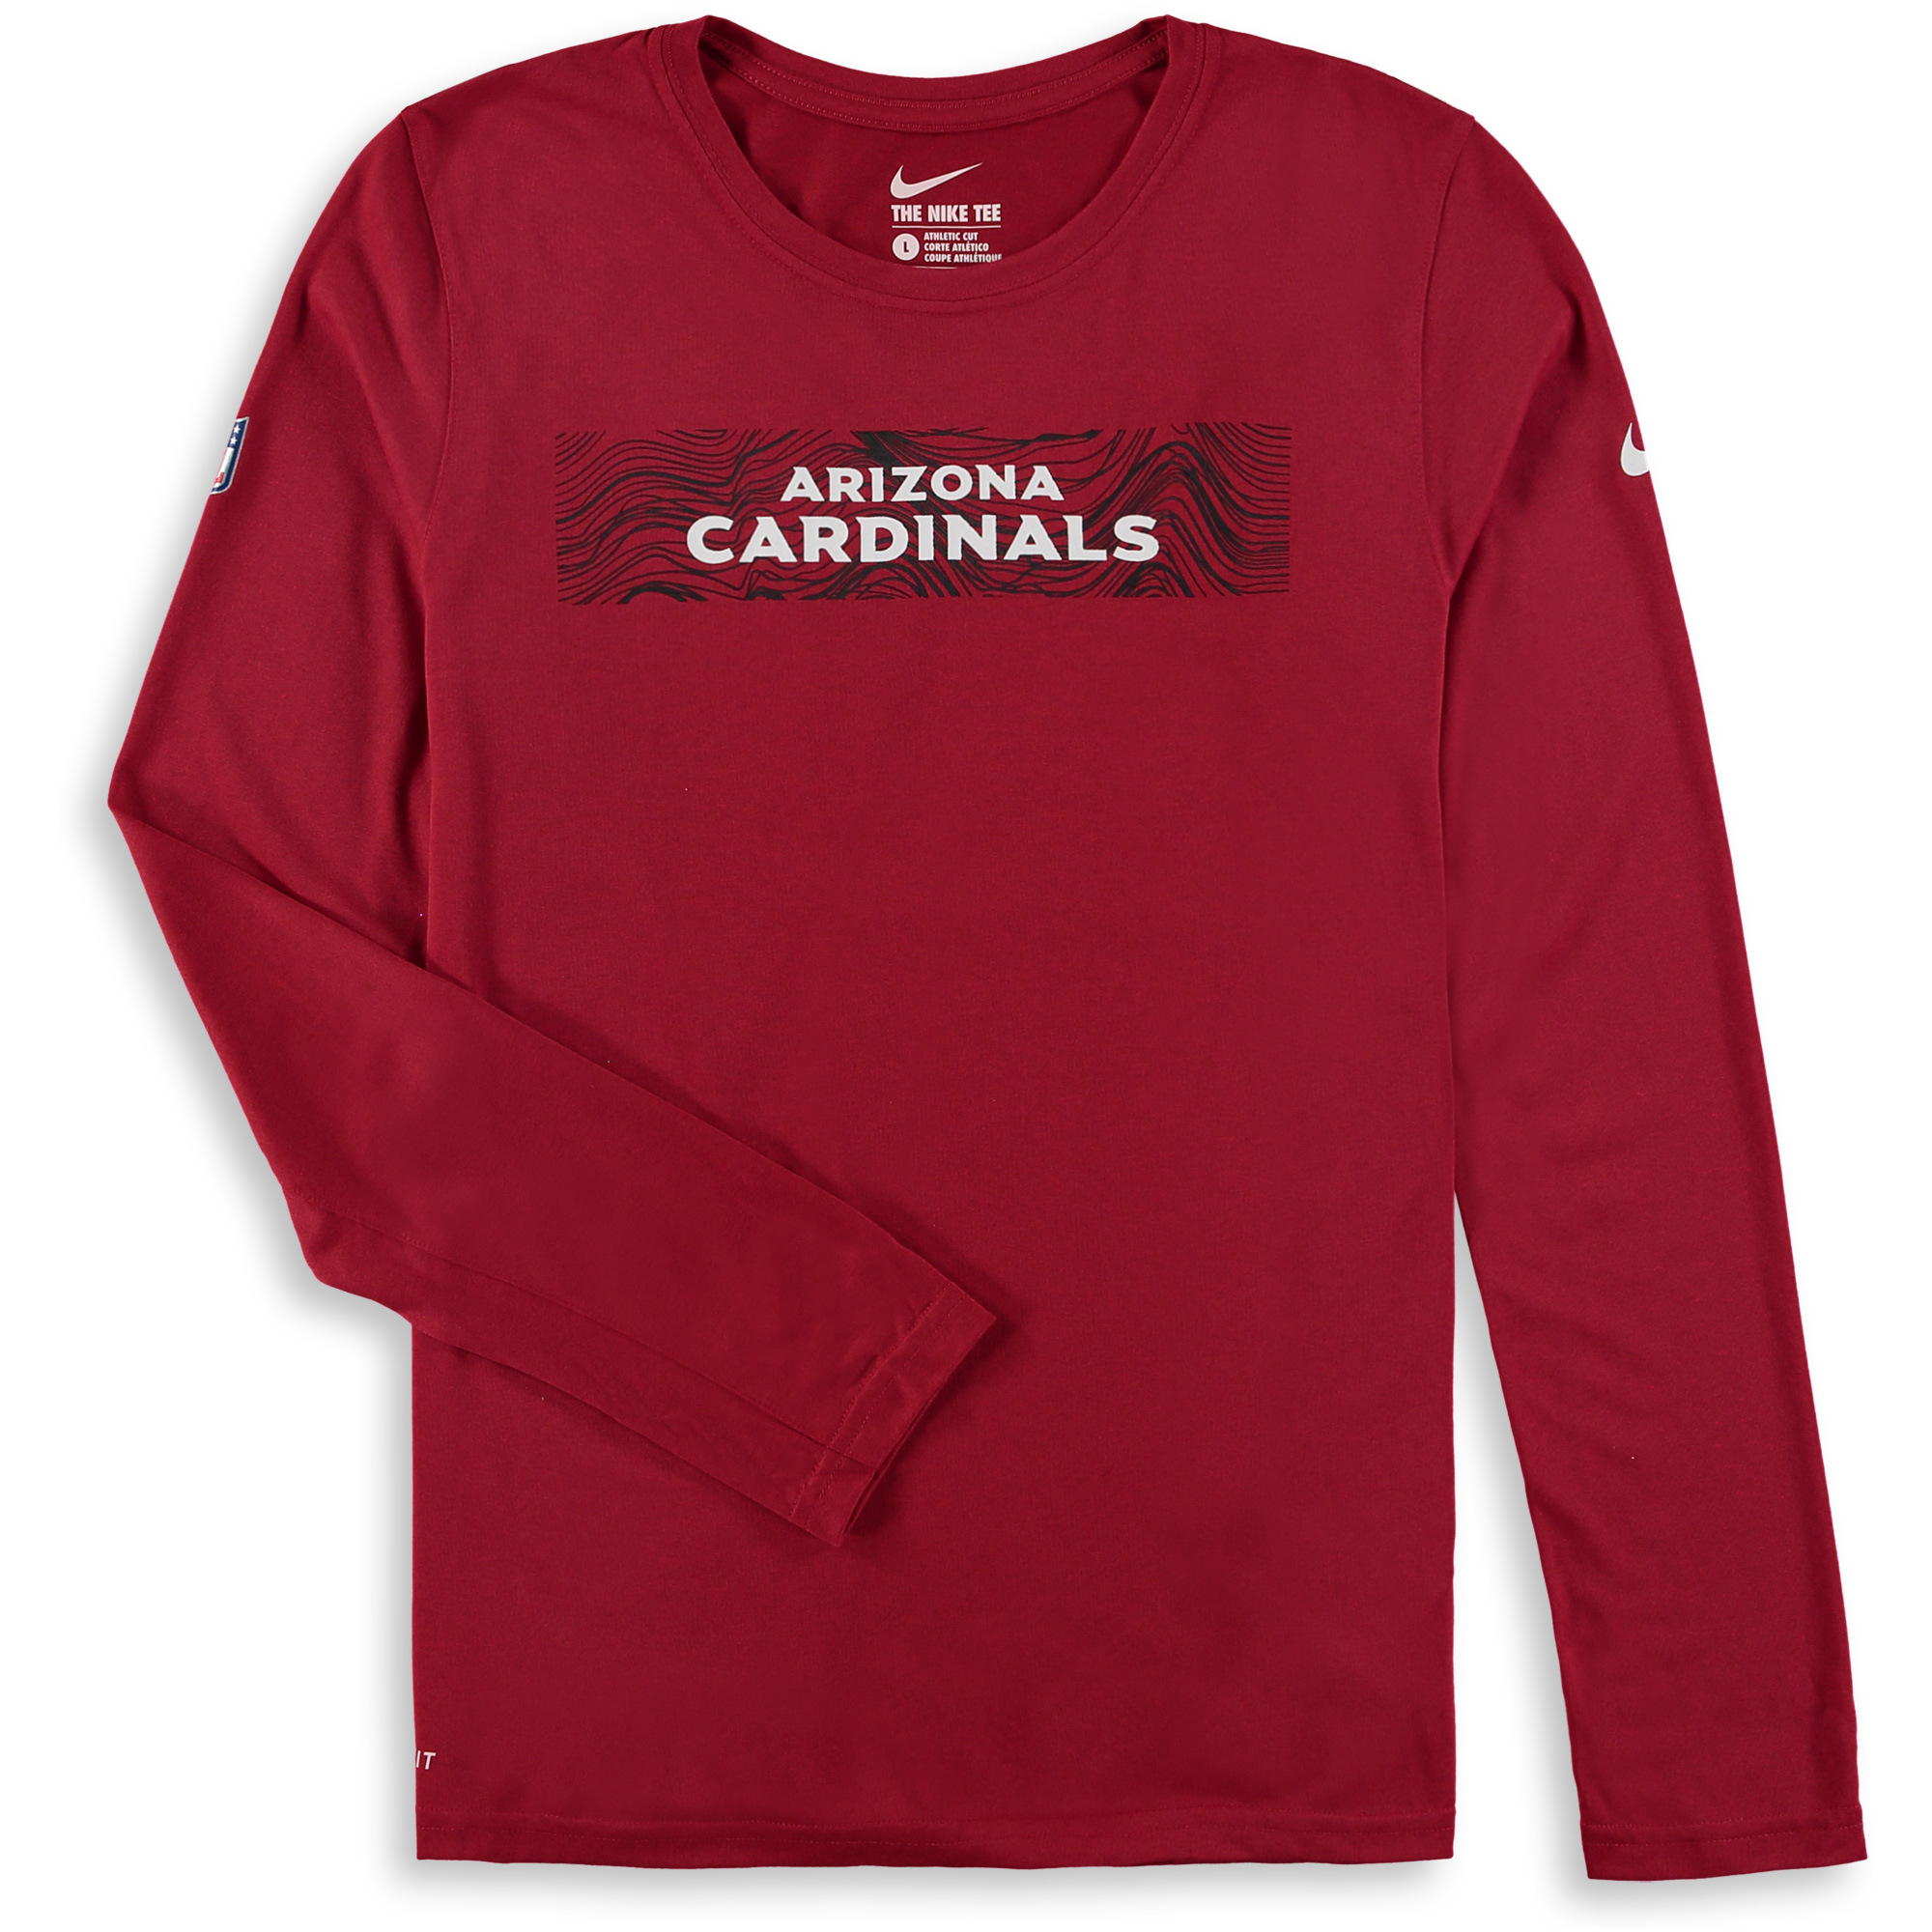 Arizona Cardinals Nike Youth Onfield Seismic Long Sleeve T-Shirt - Cardinal